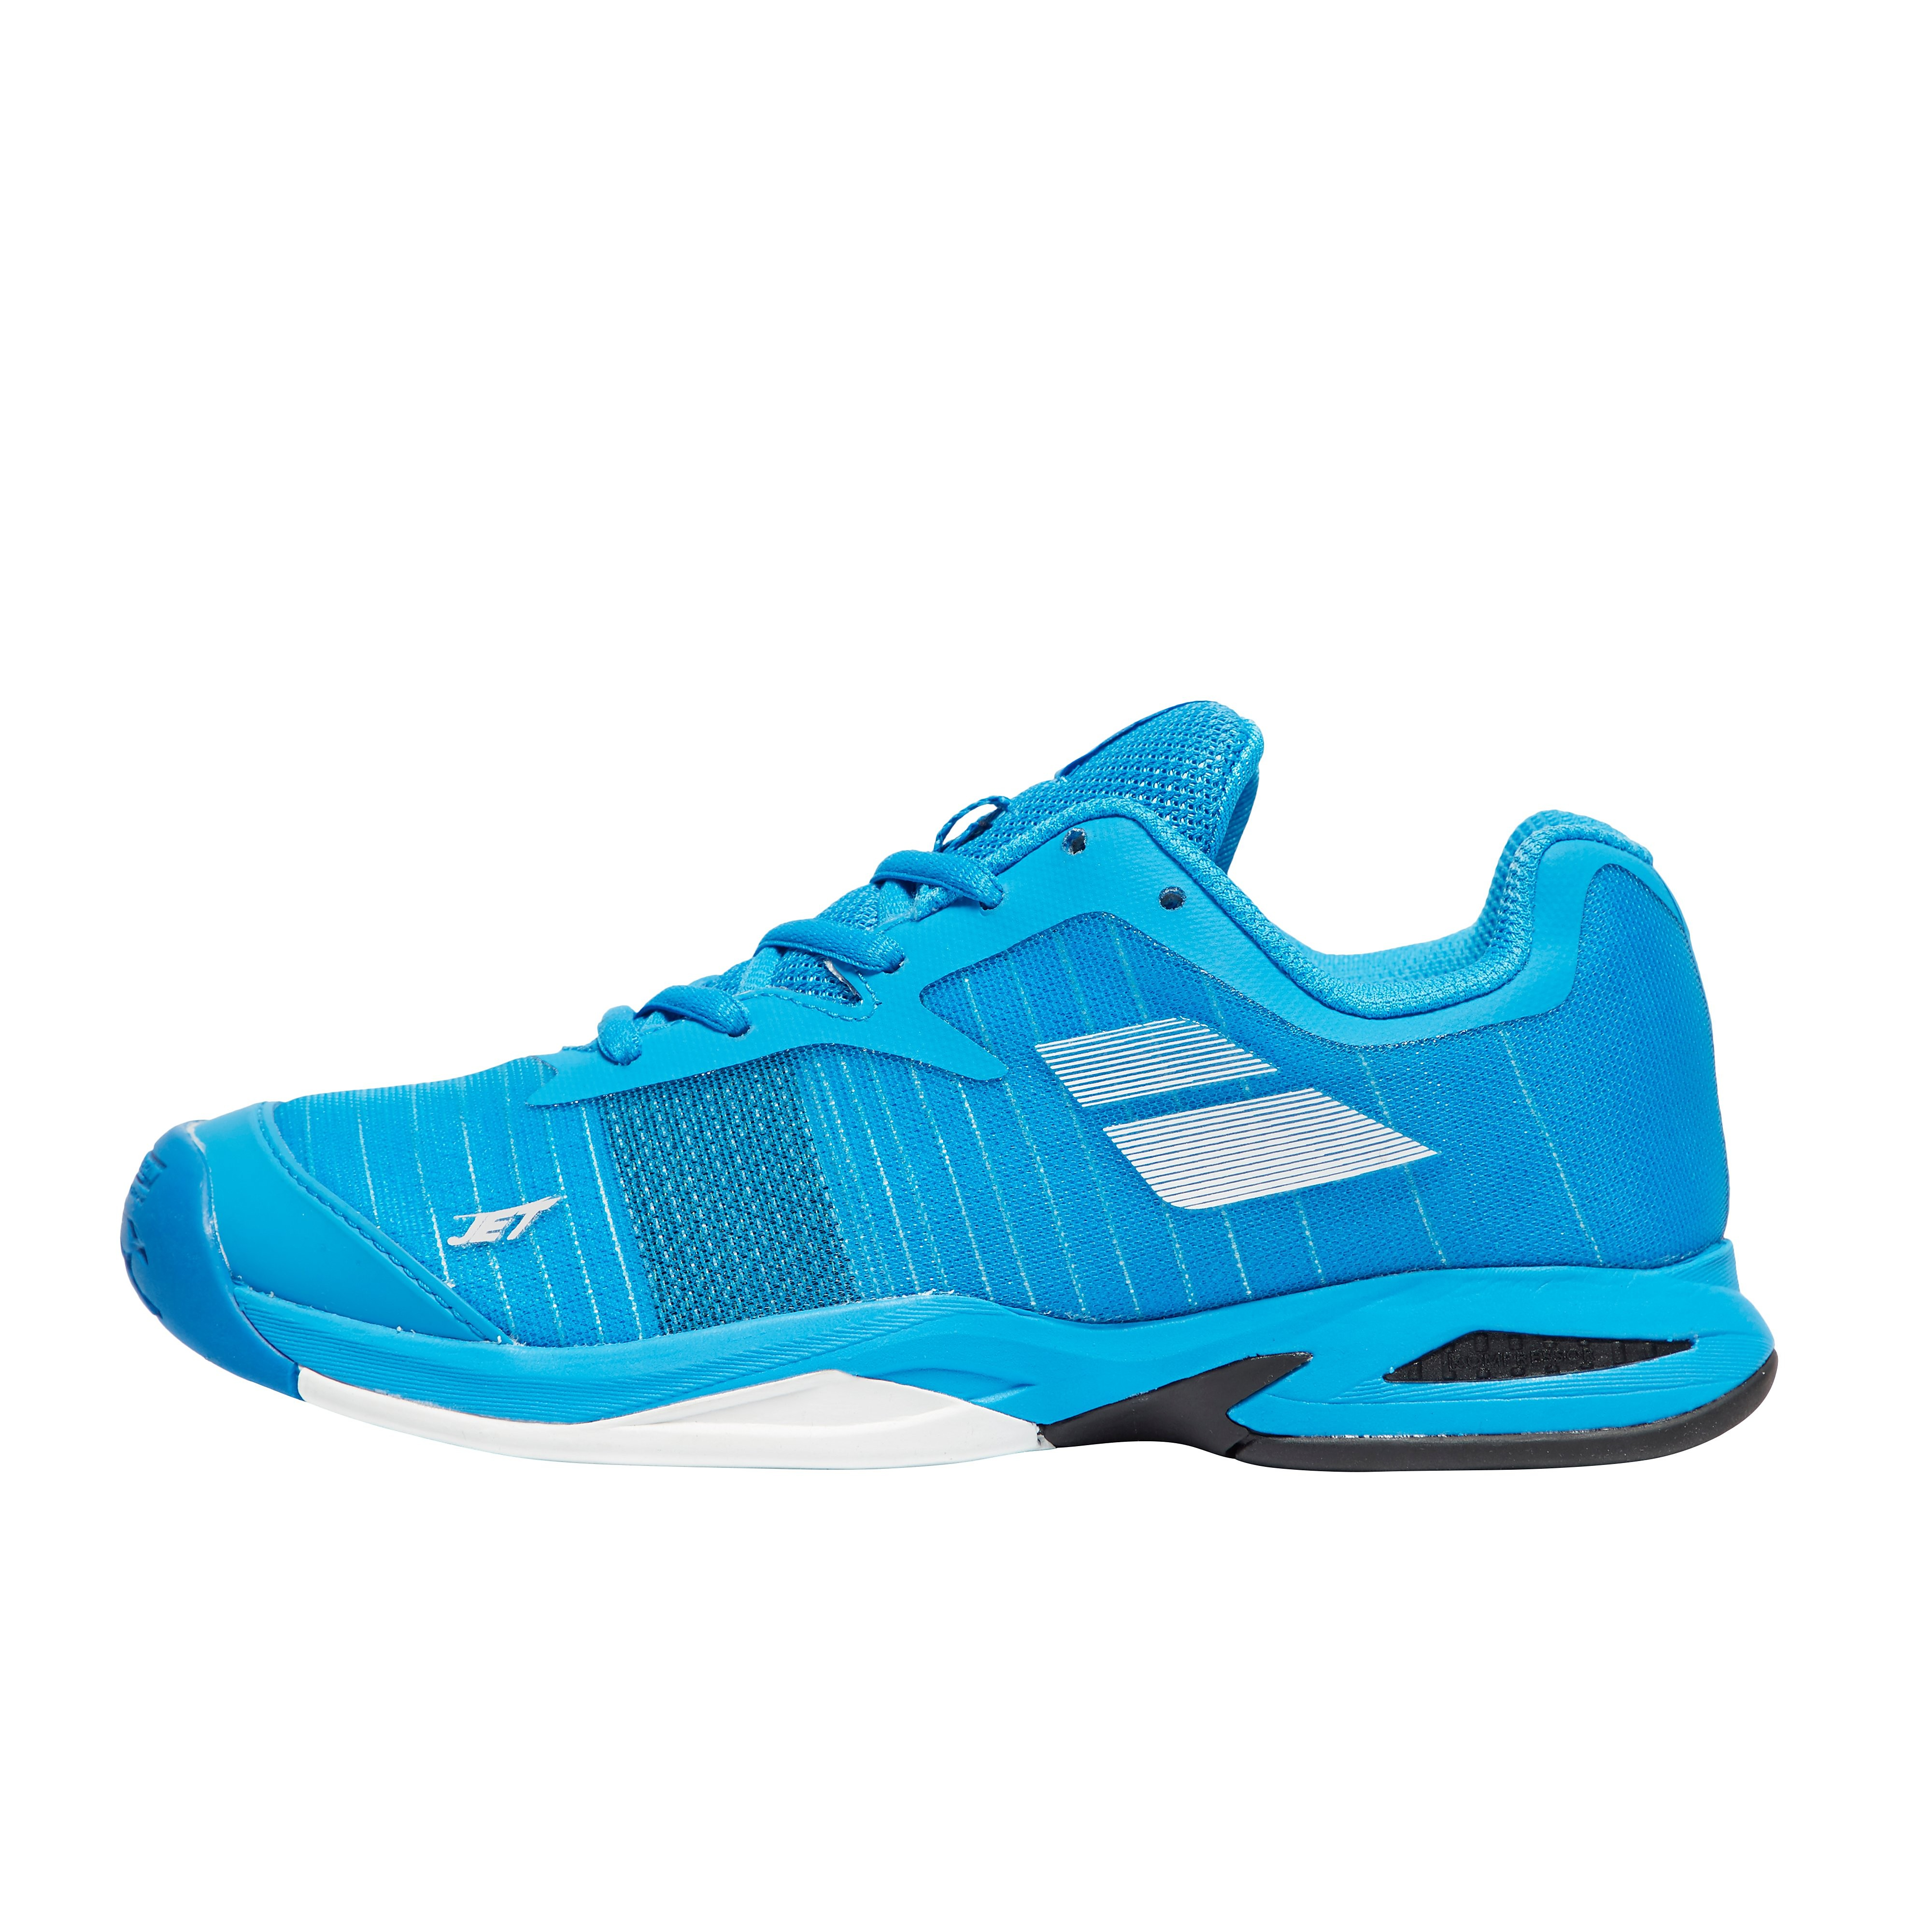 Babolat Jet All Court Junior Shoes